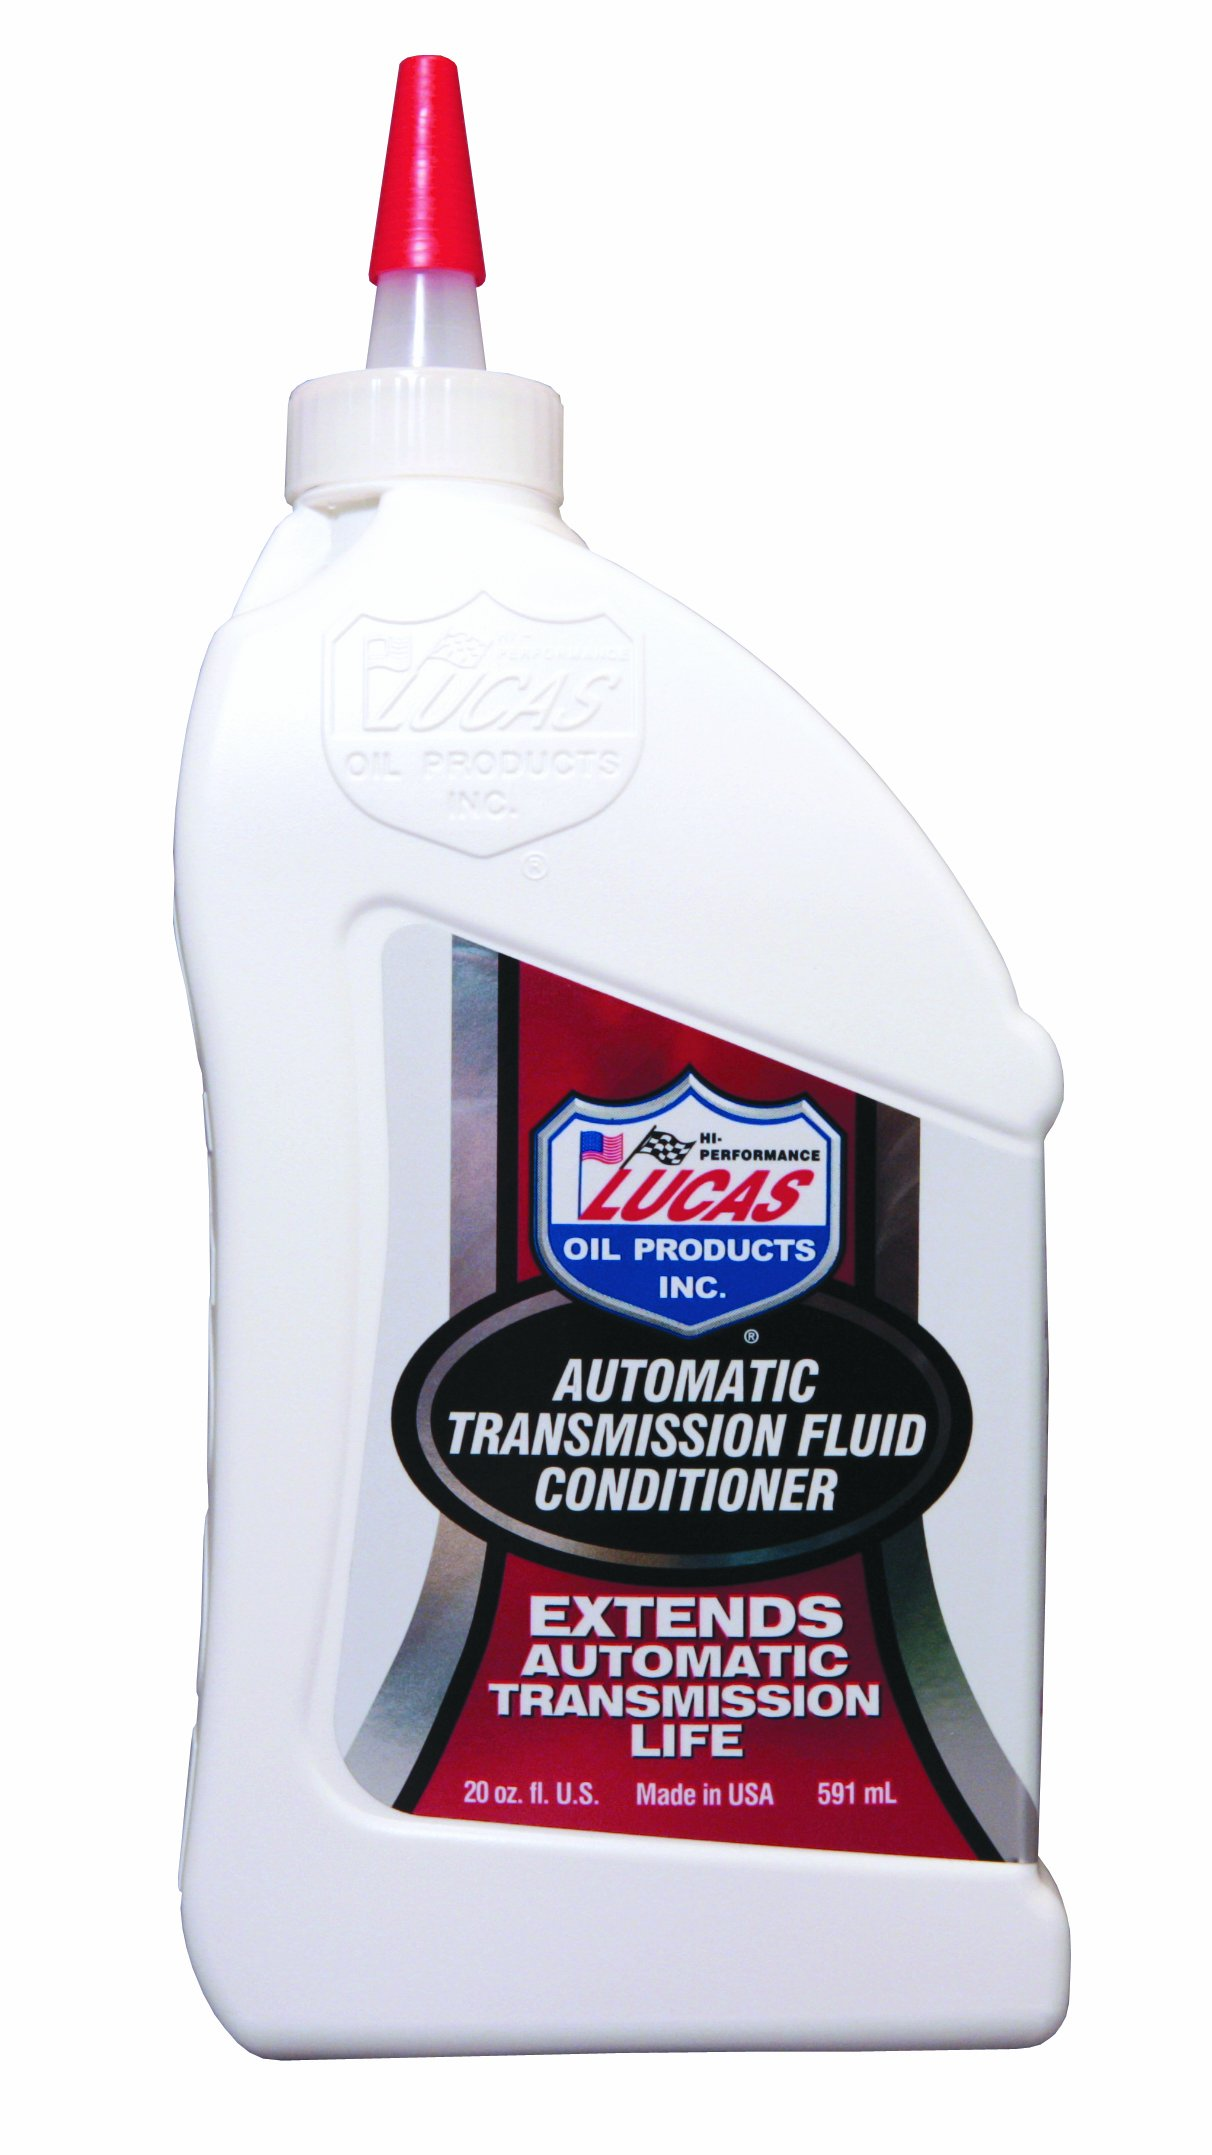 Lucas Oil 10441 Automatic Transmission Fluid Conditioner   20 Oz. Product  Image